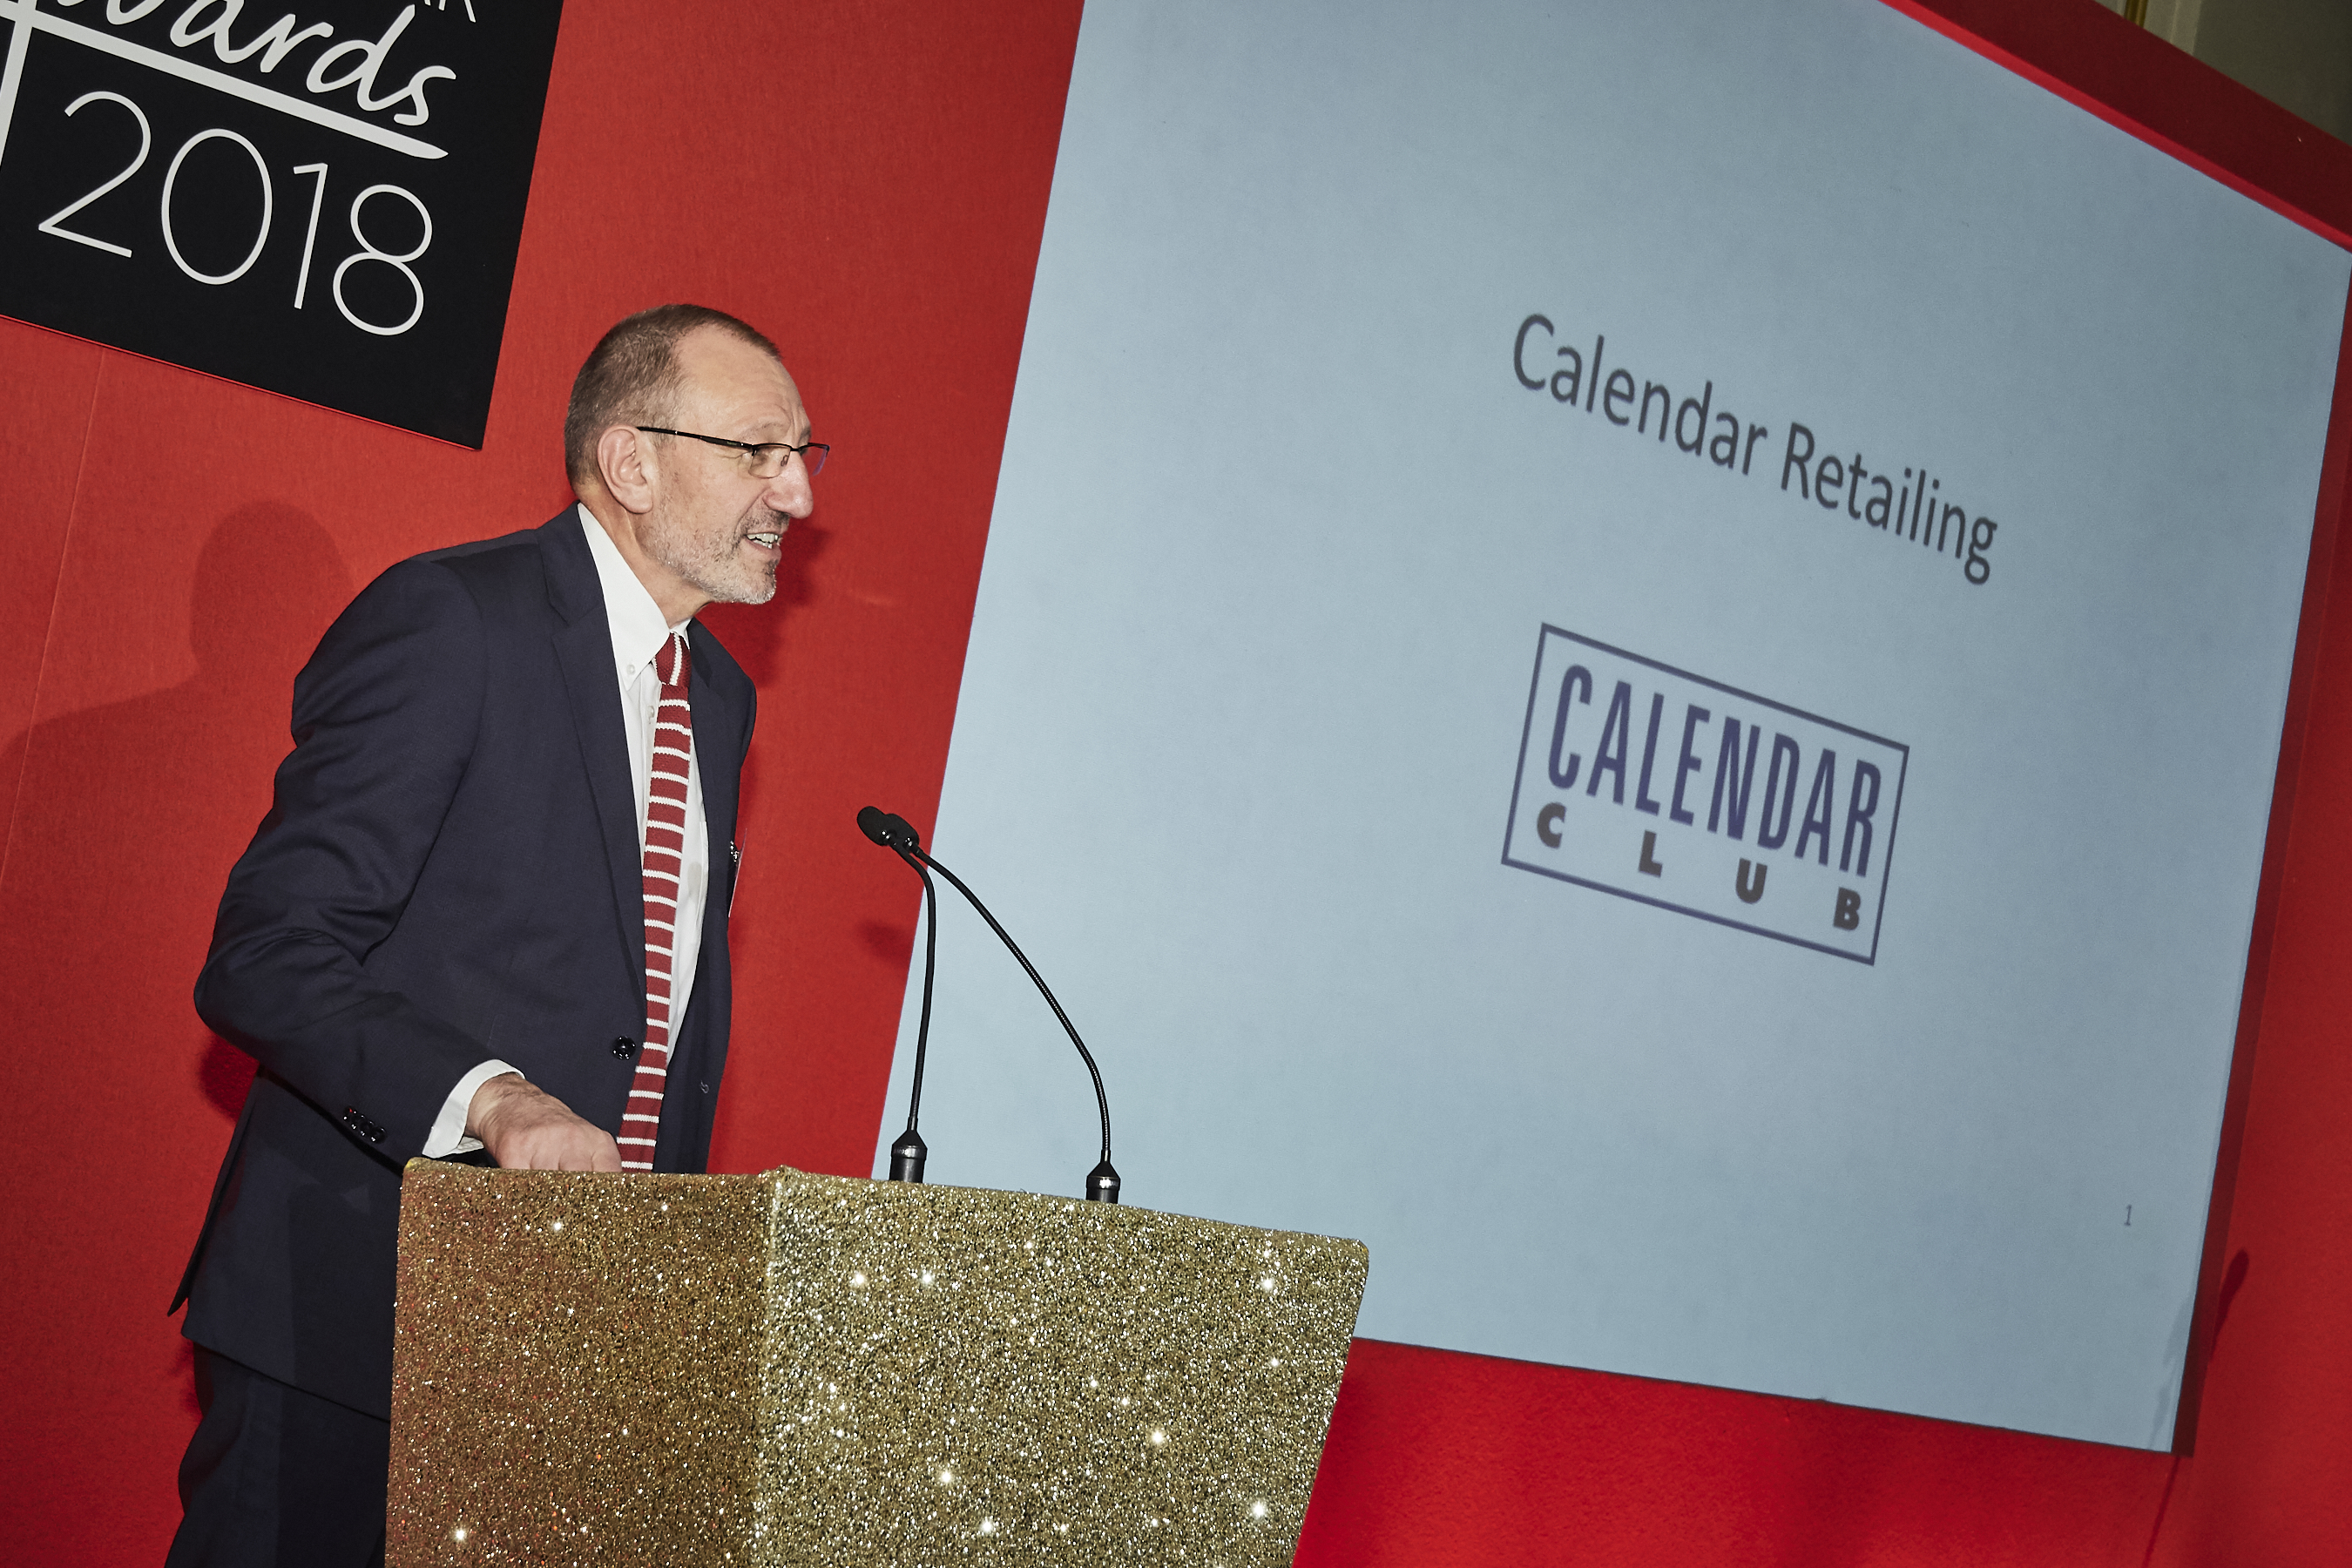 Above: David Pike addresses the audience at last year's Calies calendar awards.